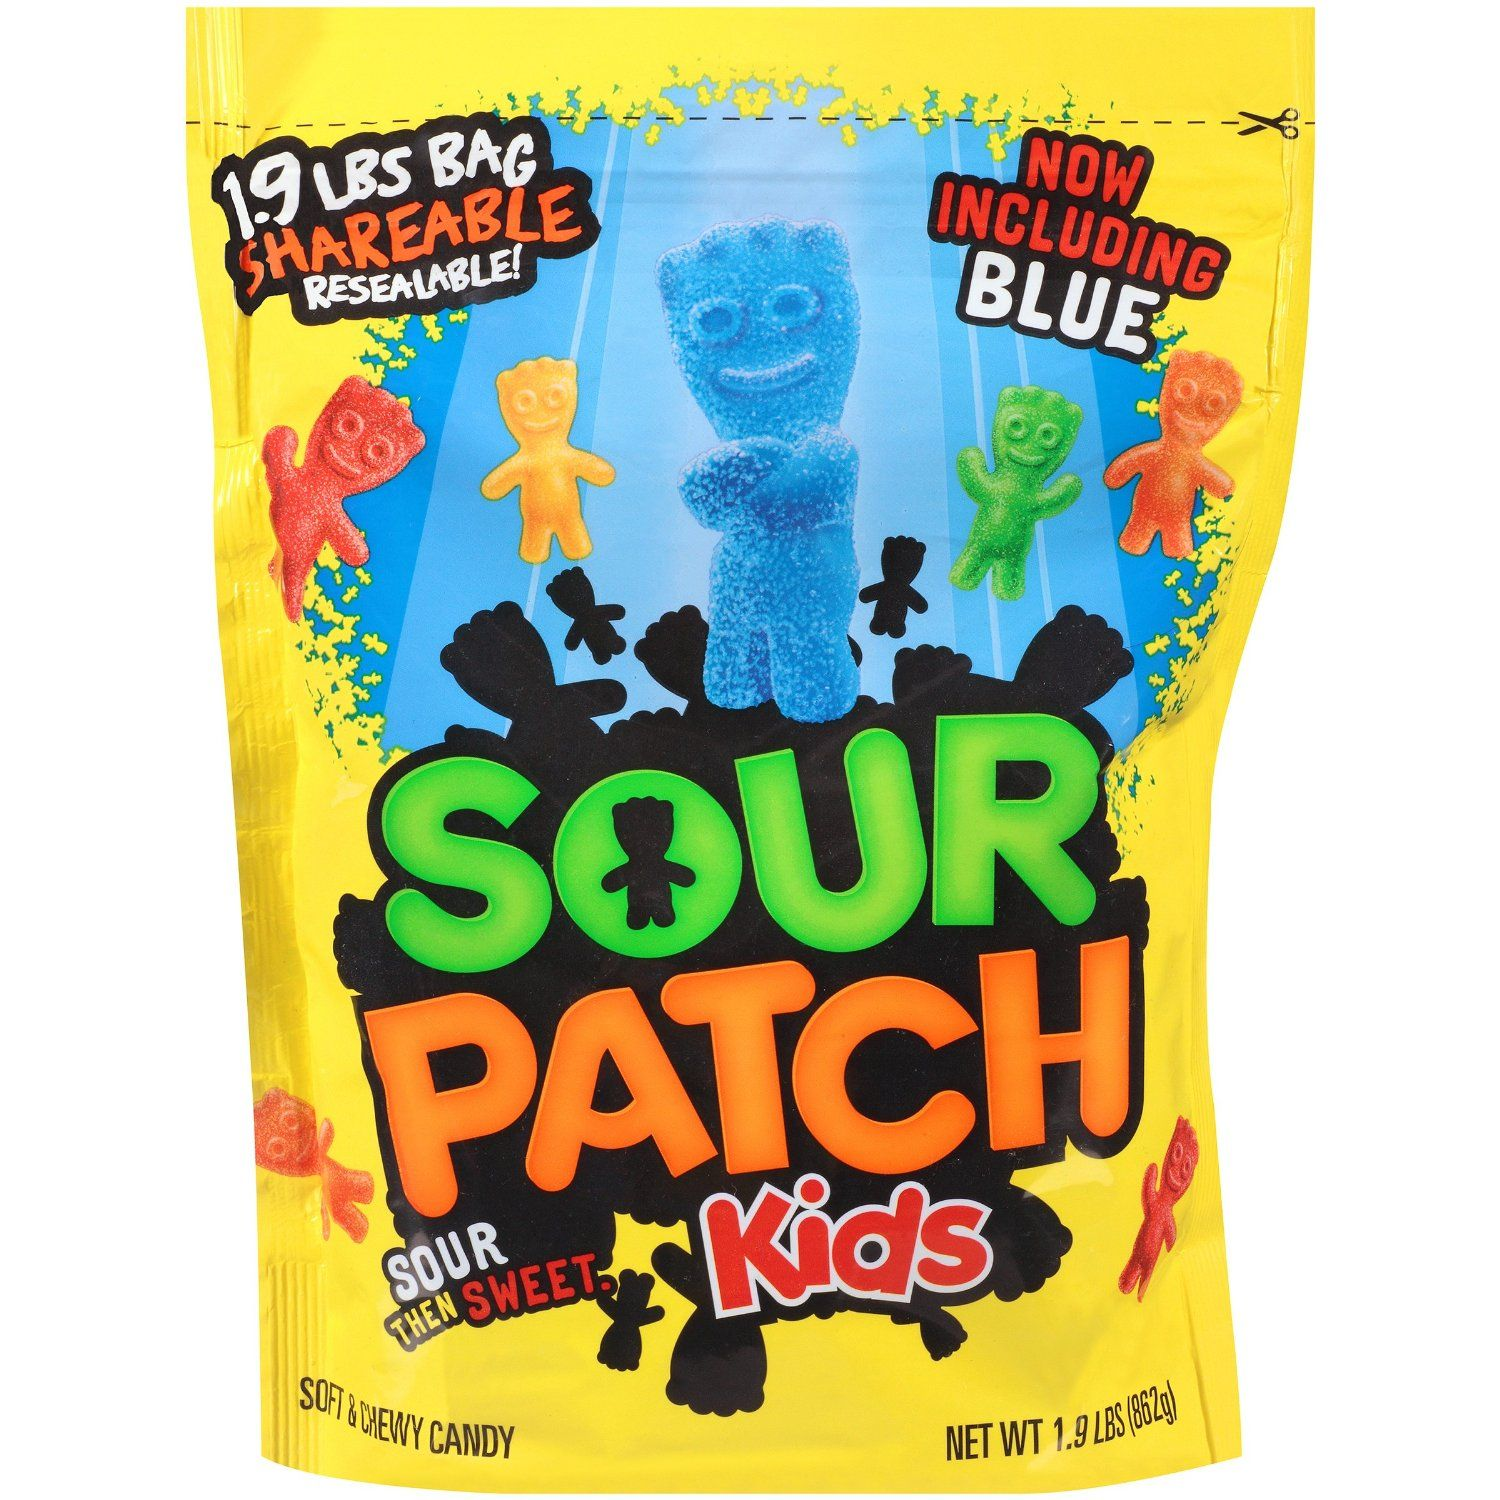 Sour Patch Kids Candy Original 30 4 Ounce You Can Get More Details Here Fresh Groceries Sour Patch Kids Kids Candy Sour Patch